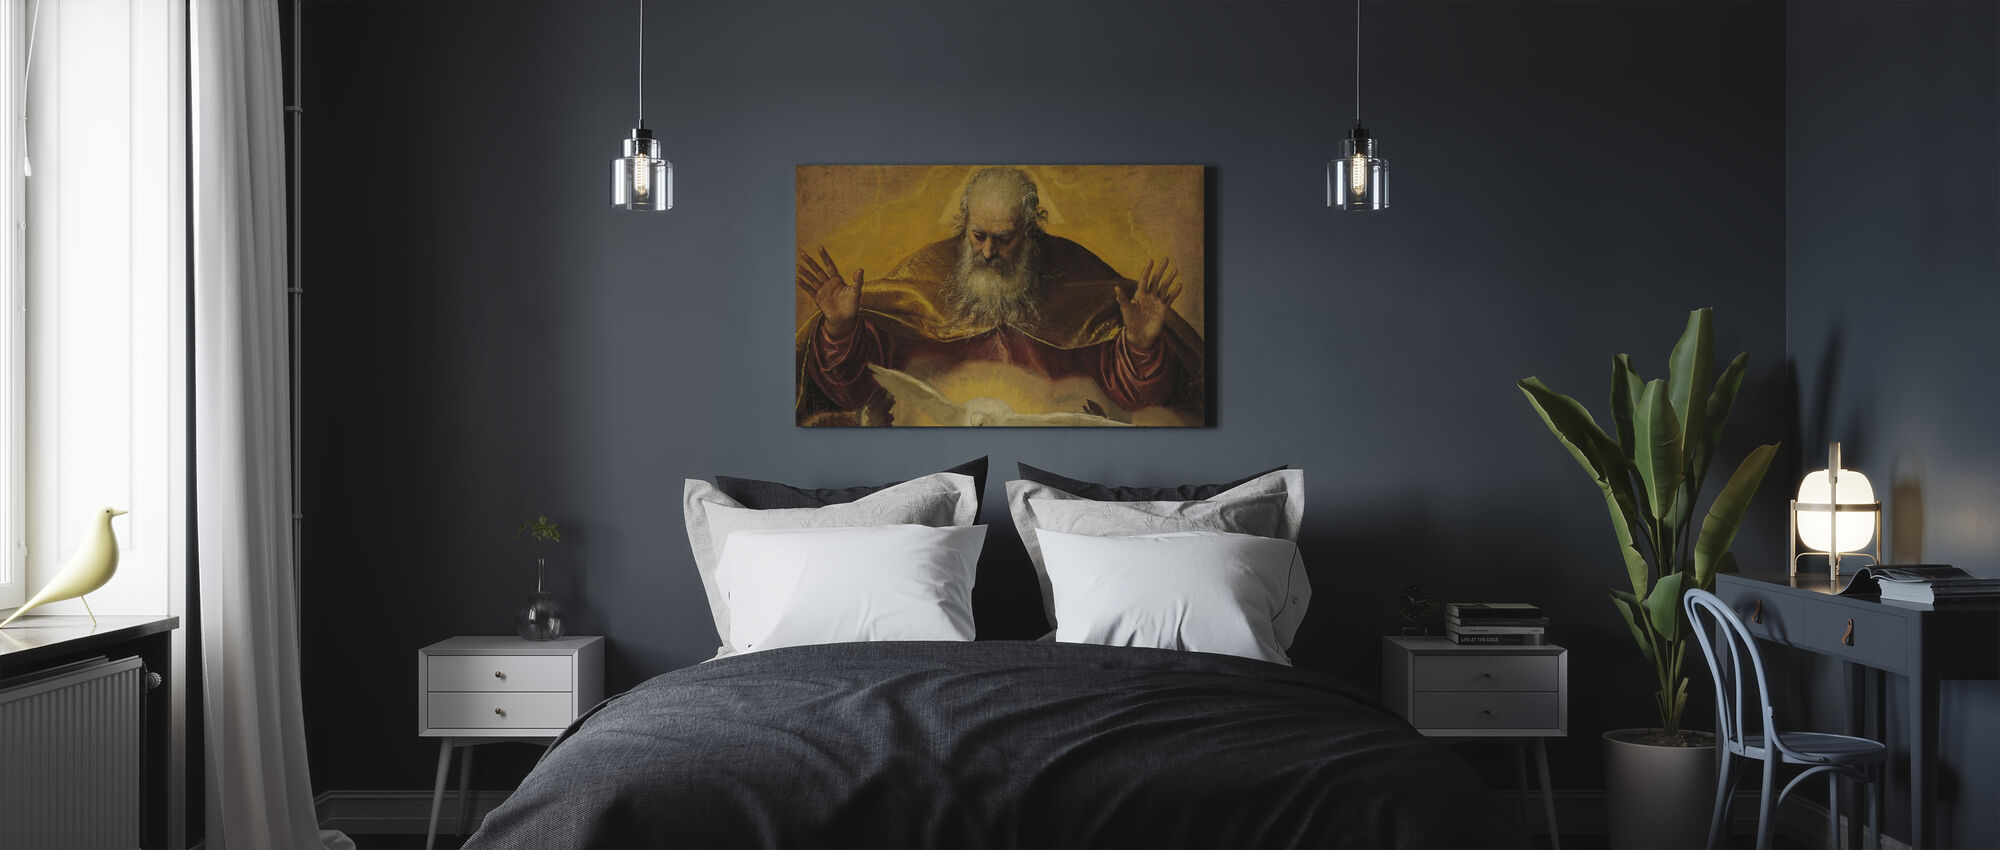 Eternal Father - Paolo Veronese - Canvas print - Bedroom